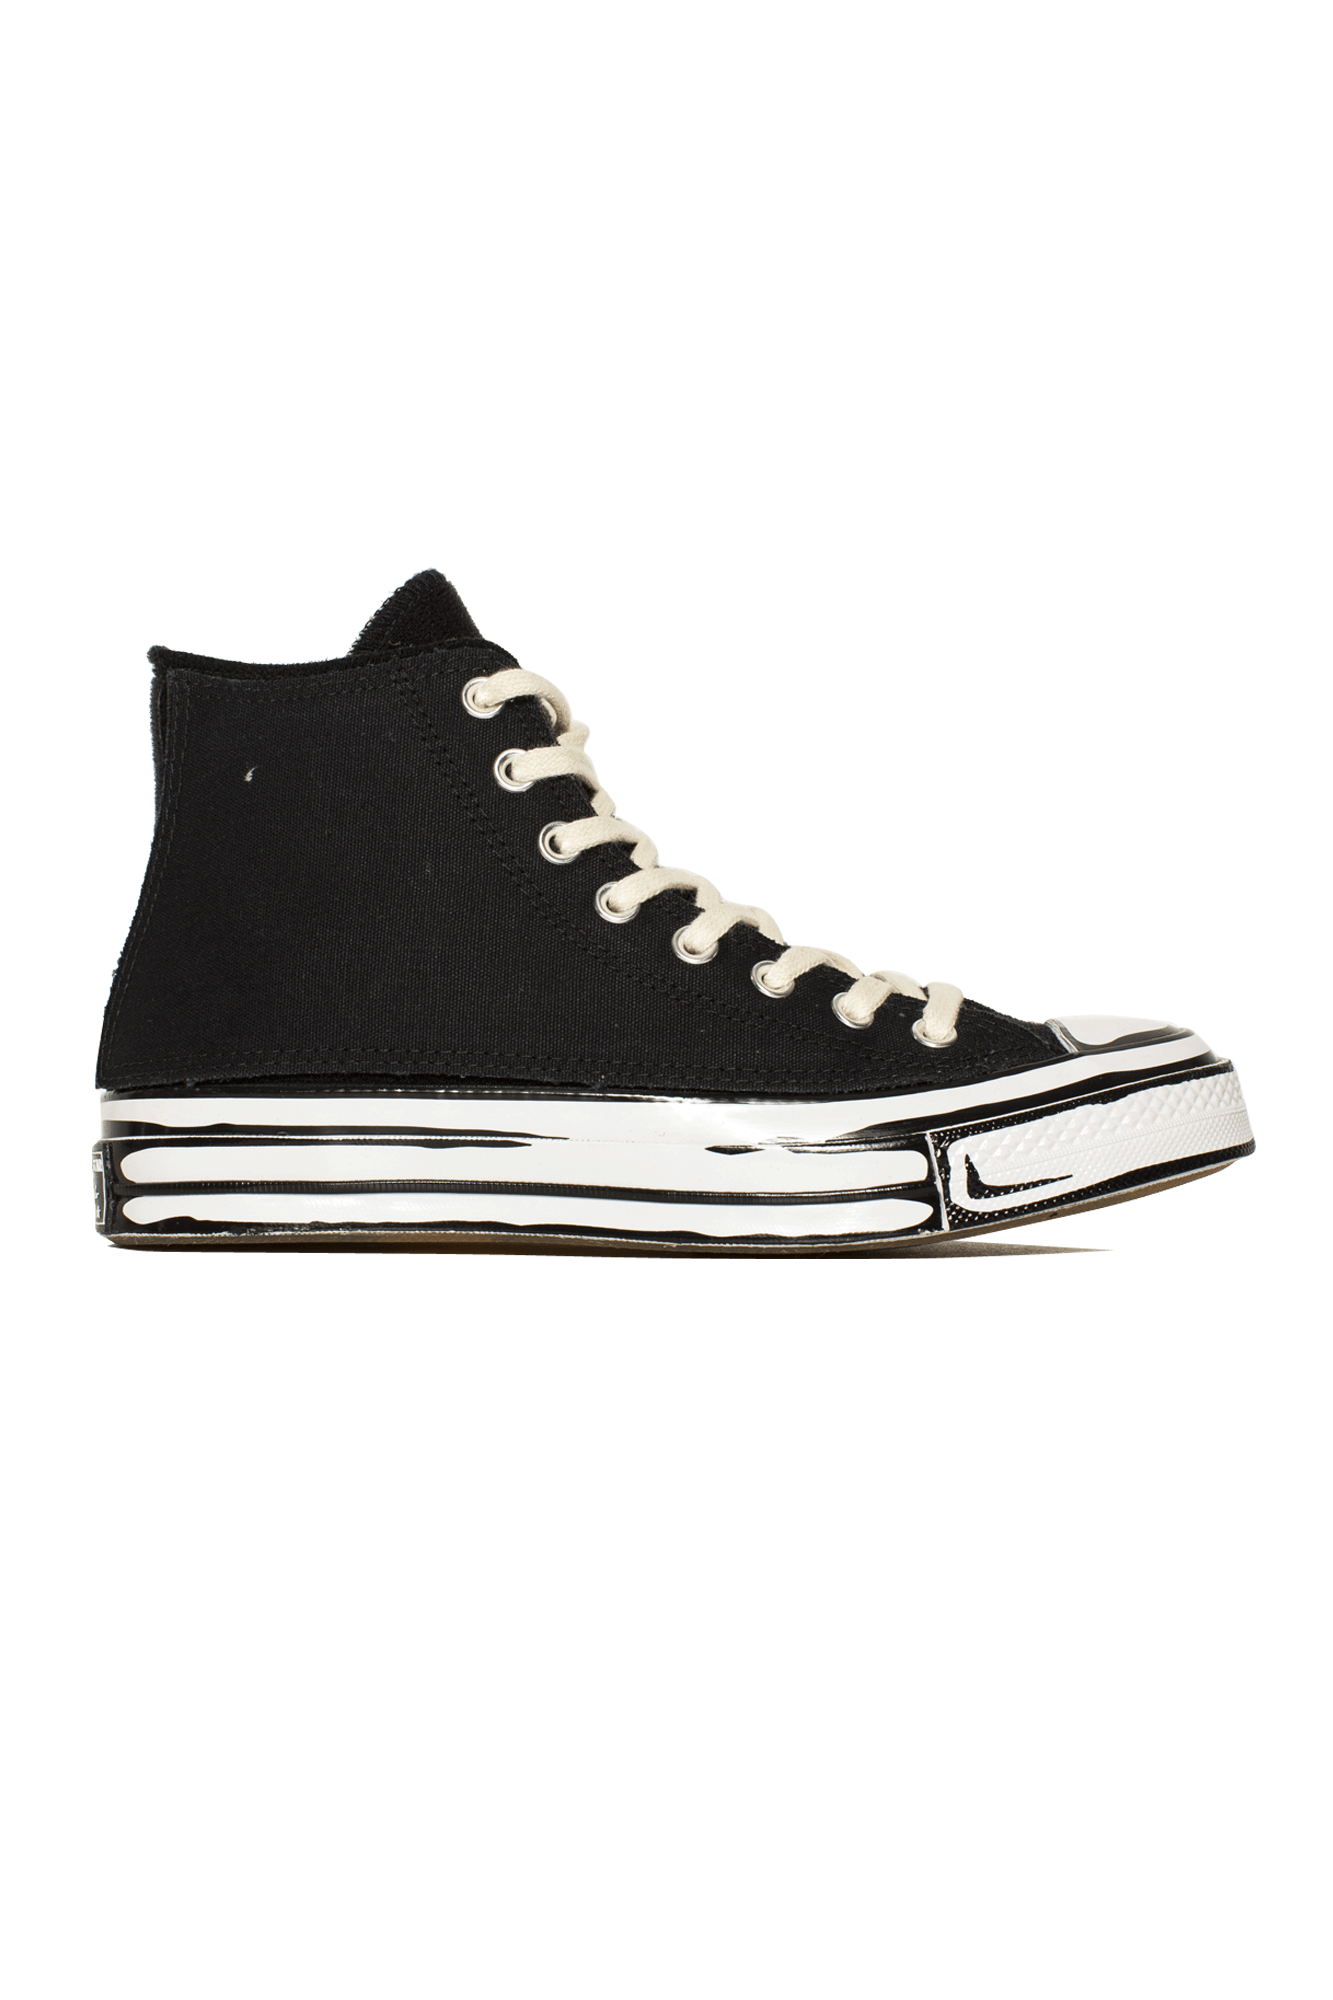 Converse Sneakers Chuck 70 x Joshua Vides Black 166558C#000#BLK#4 - One Block Down